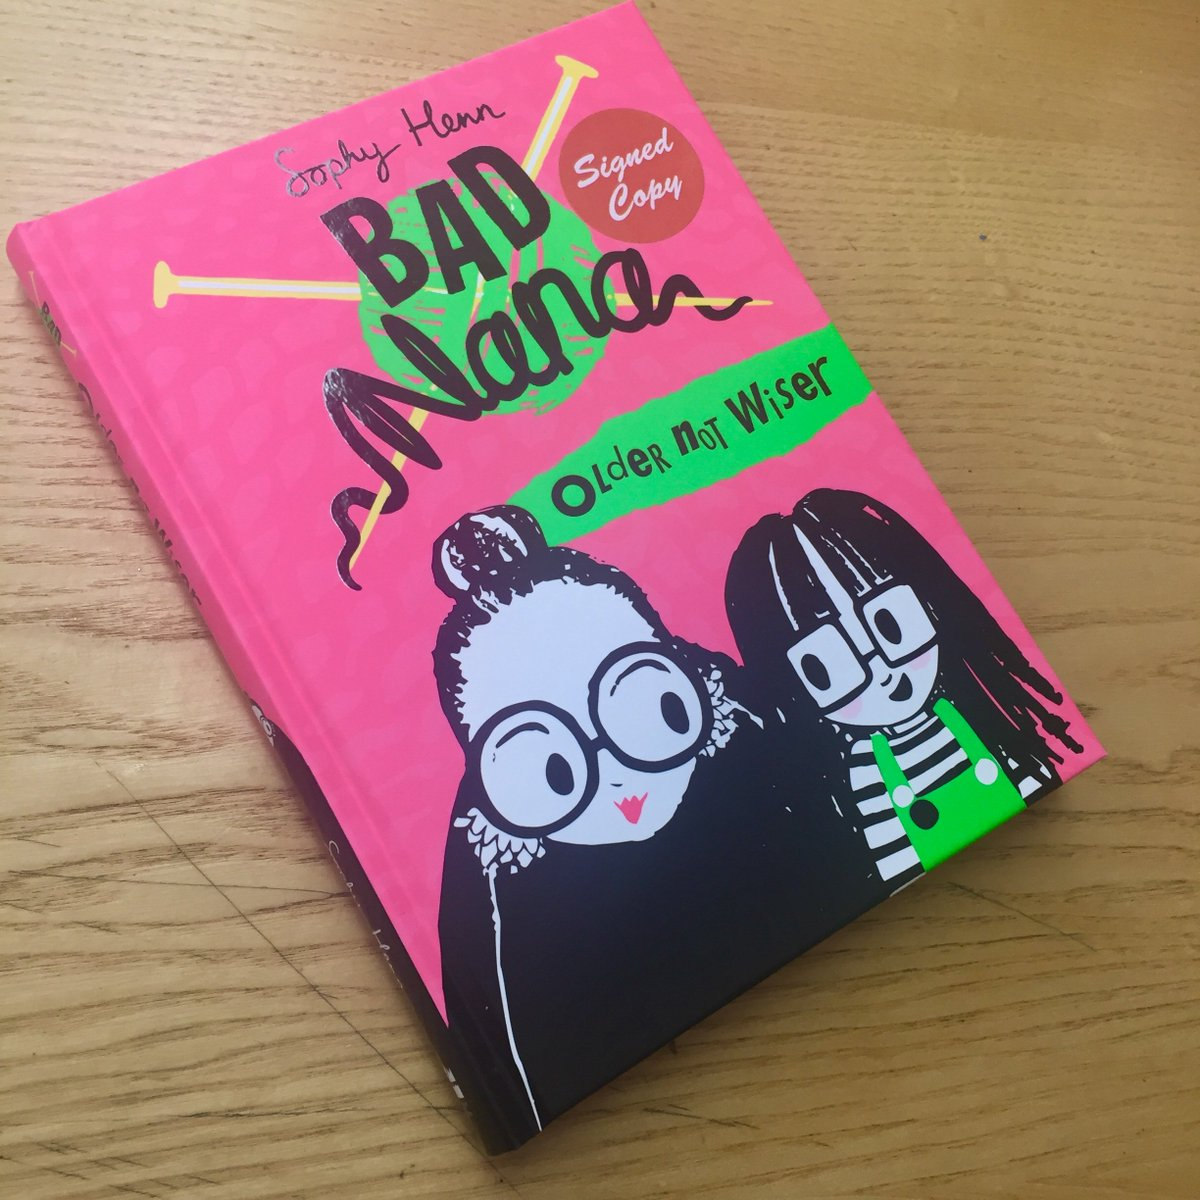 Had a wonderful visit from @sophyhenn yesterday to sign copies of her latest funny and sassy book Bad Nana. Thanks for the visit and the signed stock! @IndieThinking @HarperChildrens